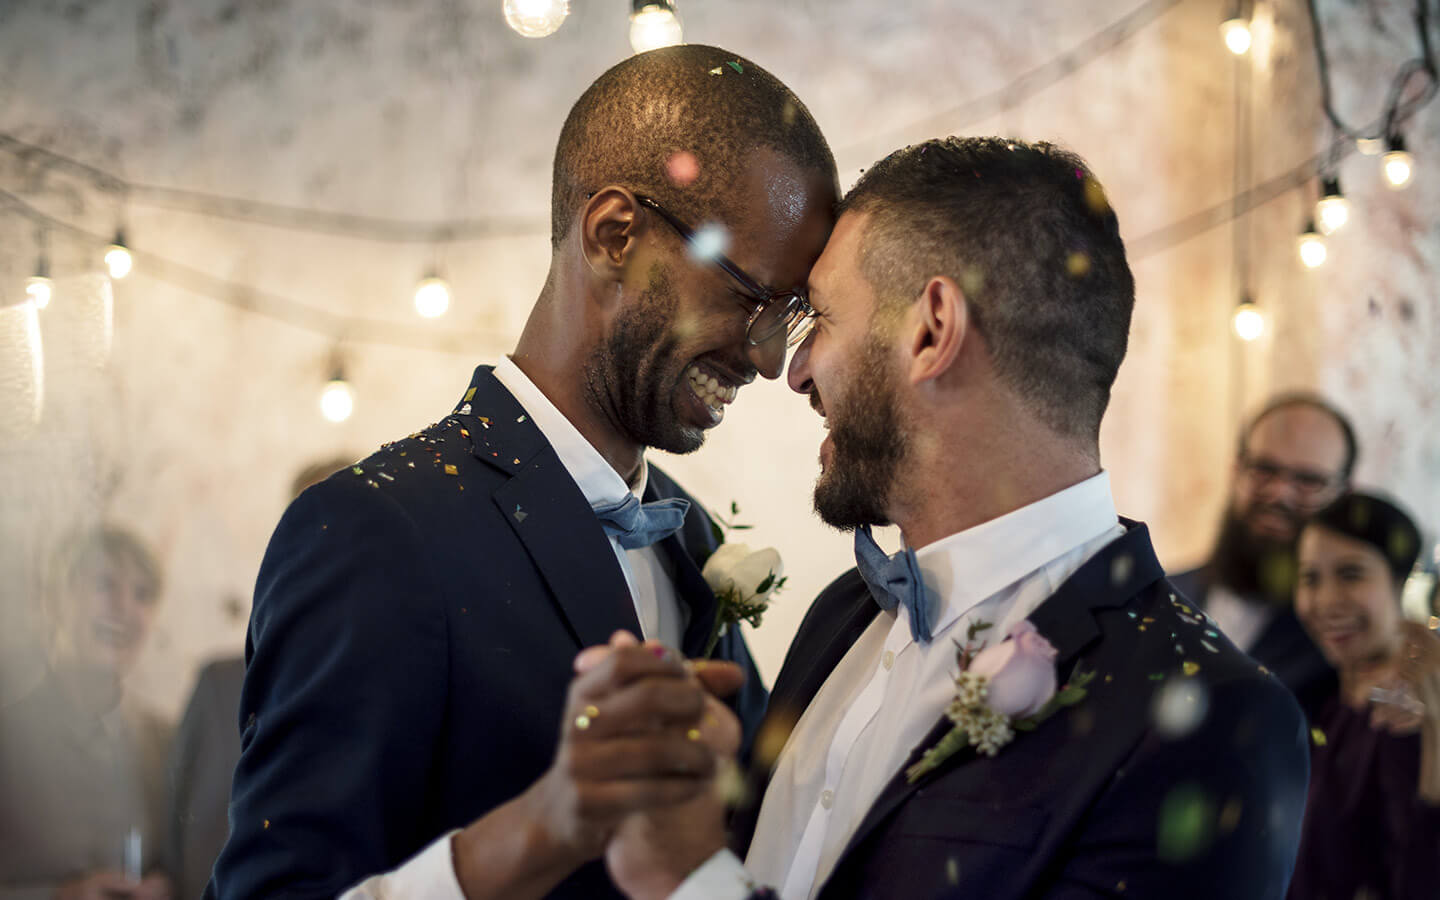 two grooms on their wedding day